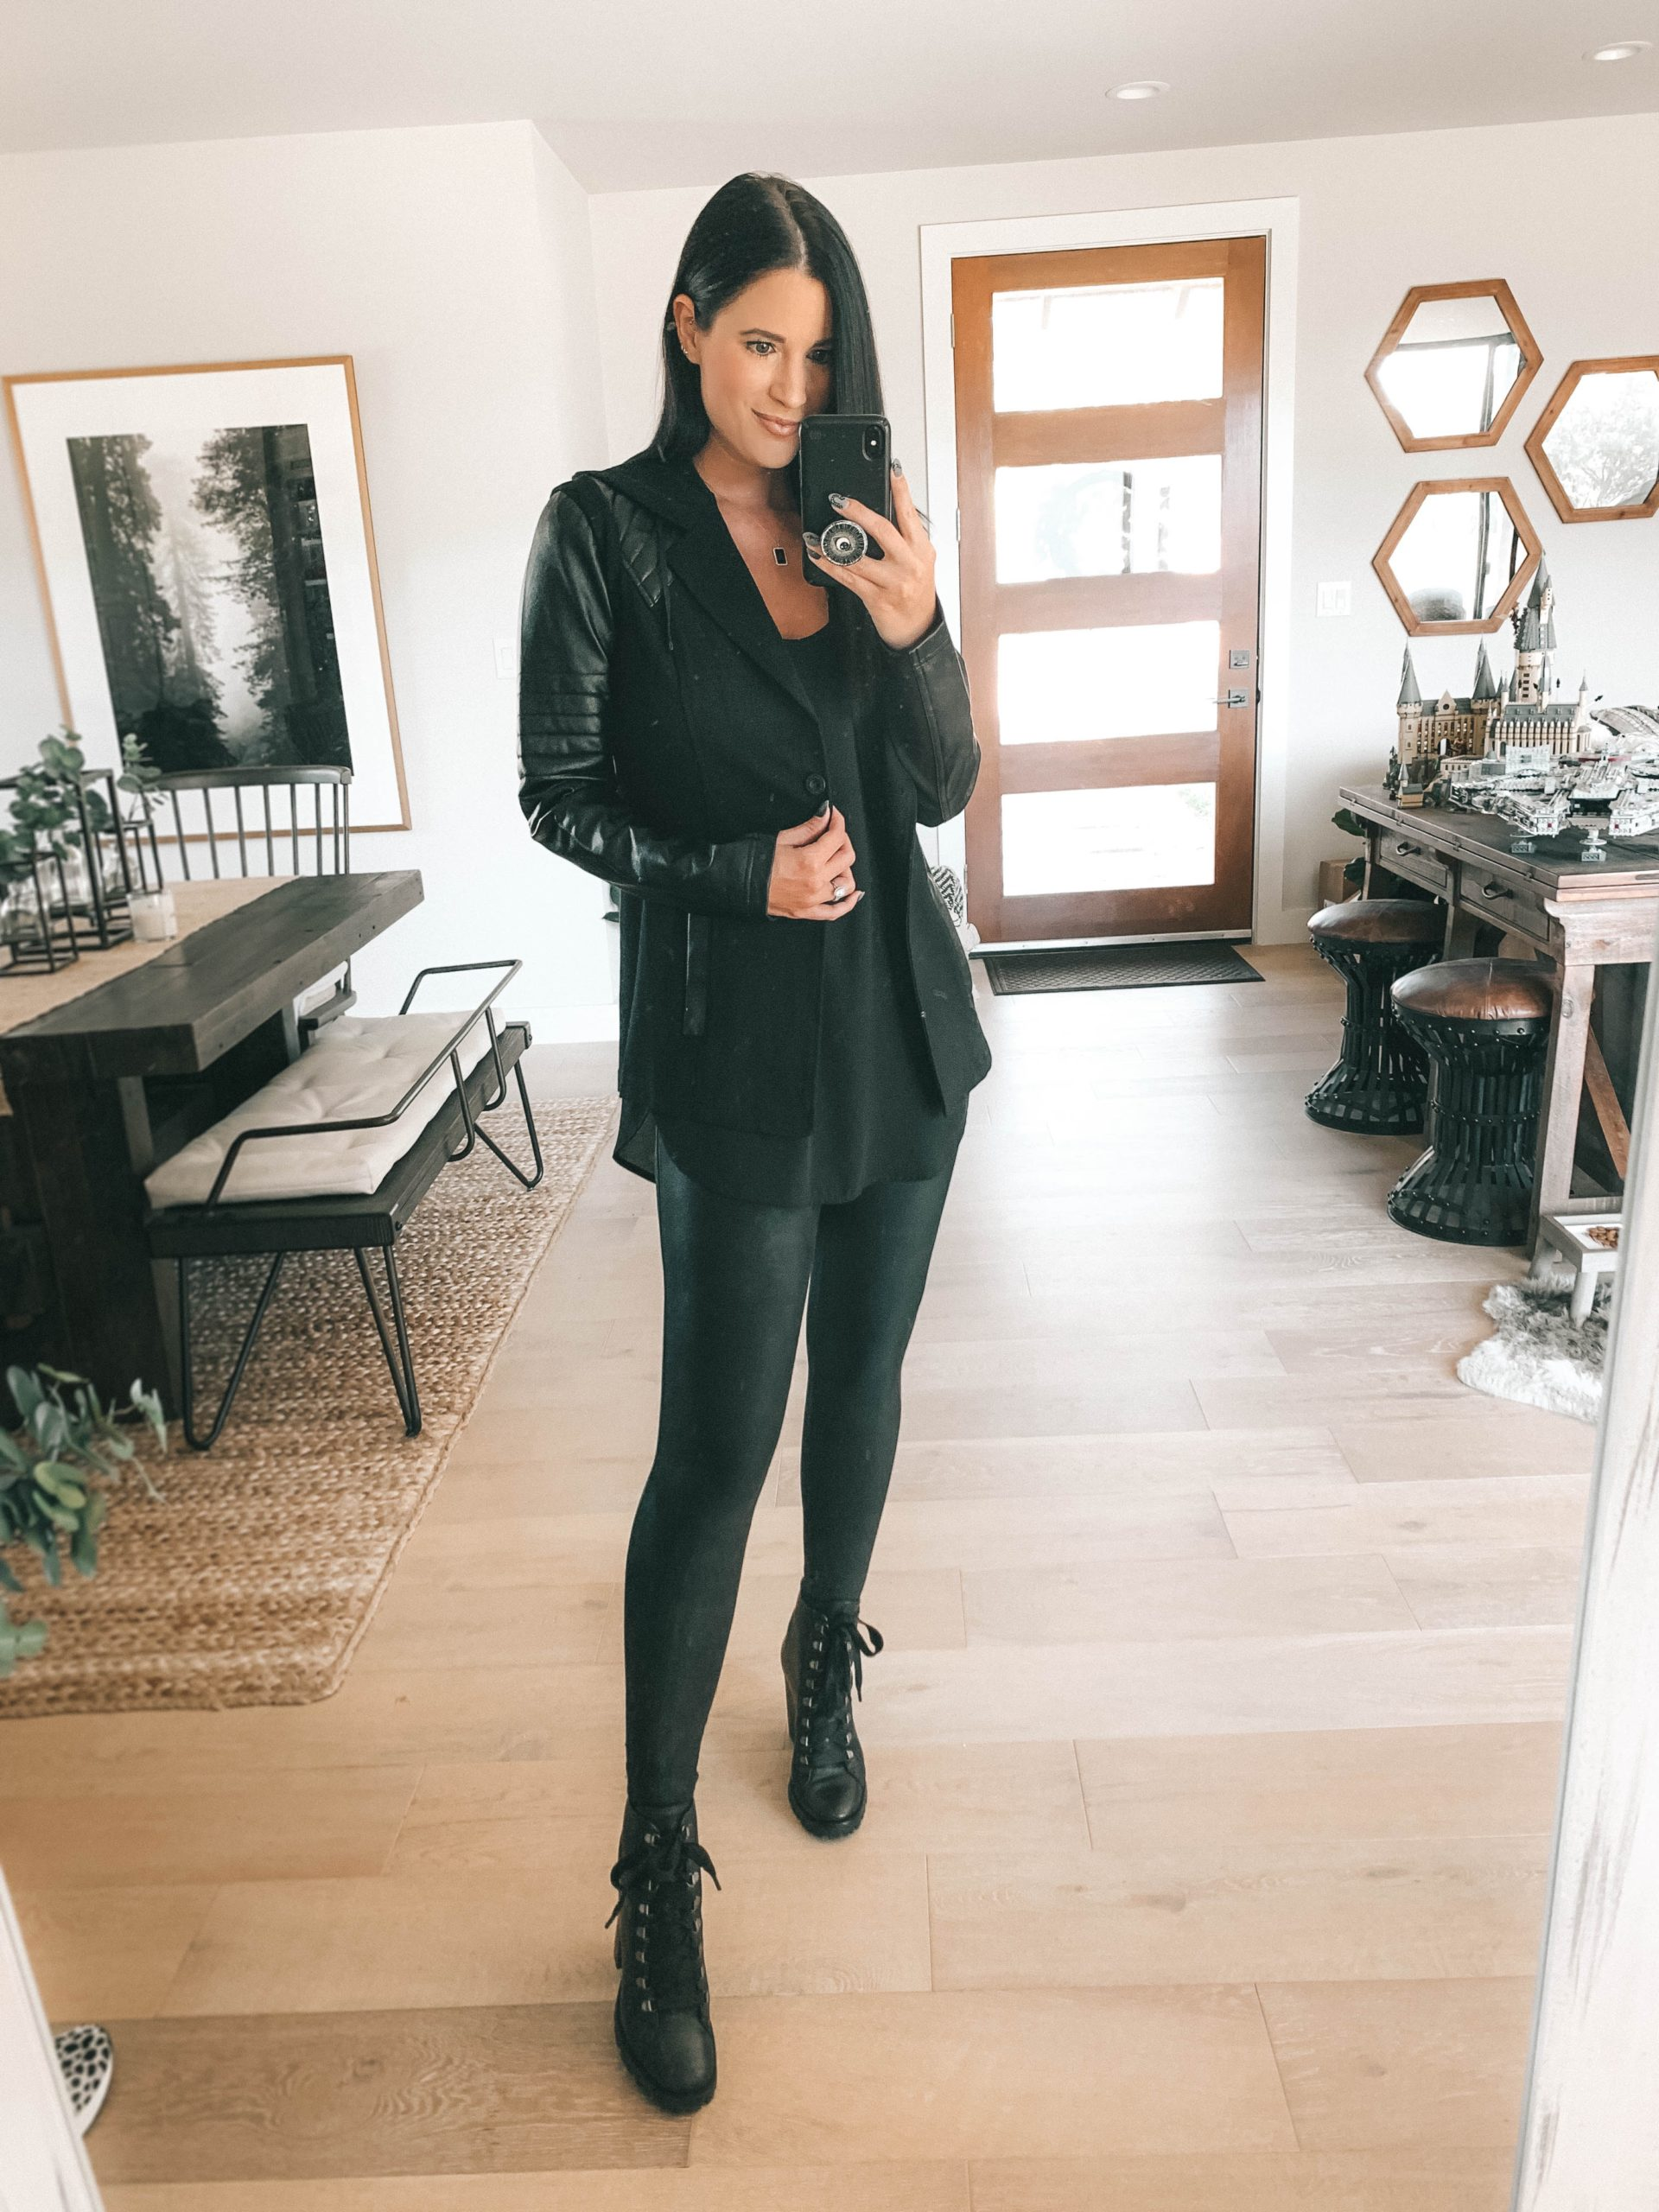 Nordstrom Anniversary Sale by popular Austin fashion blog, Dressed to Kill: image of a woman wearing a pair of Nordstrom Gimmick Lace-Up Boot CHARLES DAVID, Nordstrom Faux Leather Leggings SPANX, and Nordstrom Hooded Moto Blazer with Faux Leather Sleeves BLANC NOIR.